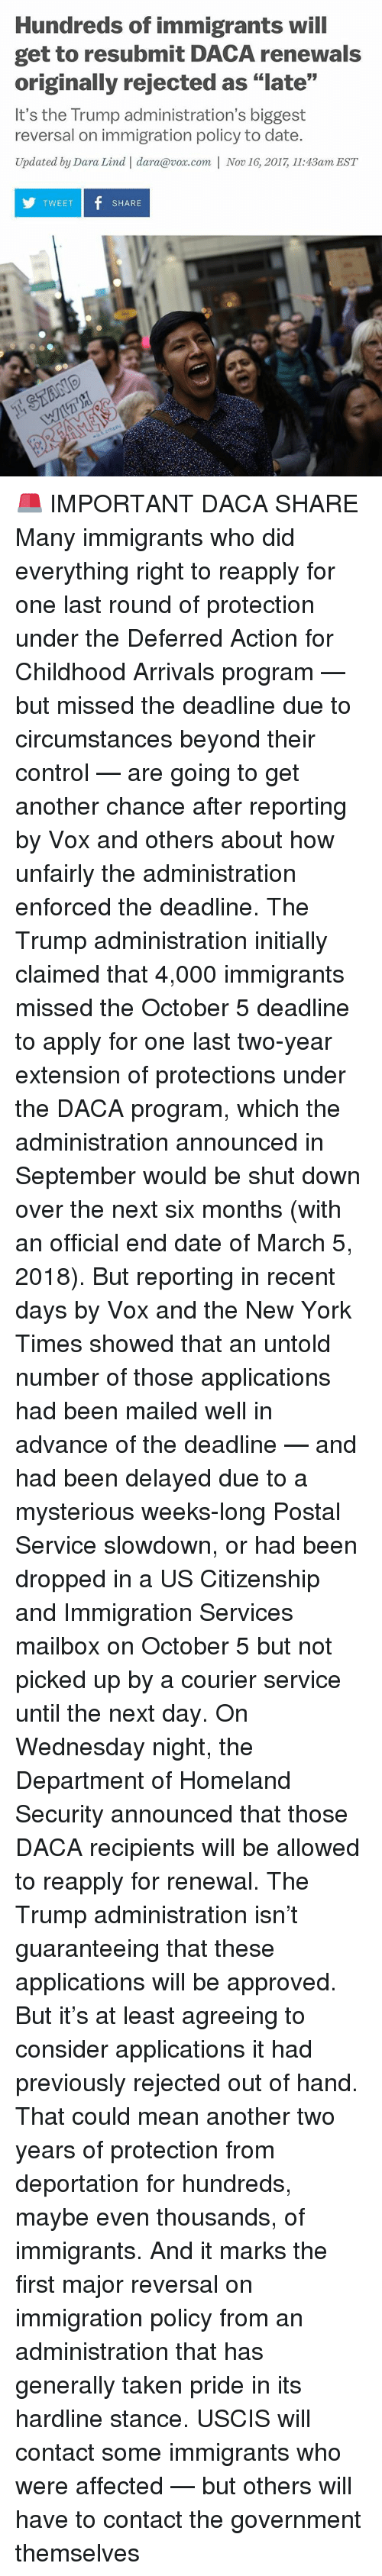 """Memes, New York, and Taken: Hundreds of immigrants will  get to resubmit DACA renewals  originally rejected as """"late""""  It's the Trump administration's biggest  reversal on immigration policy to date.  Updated by Dara Lind 